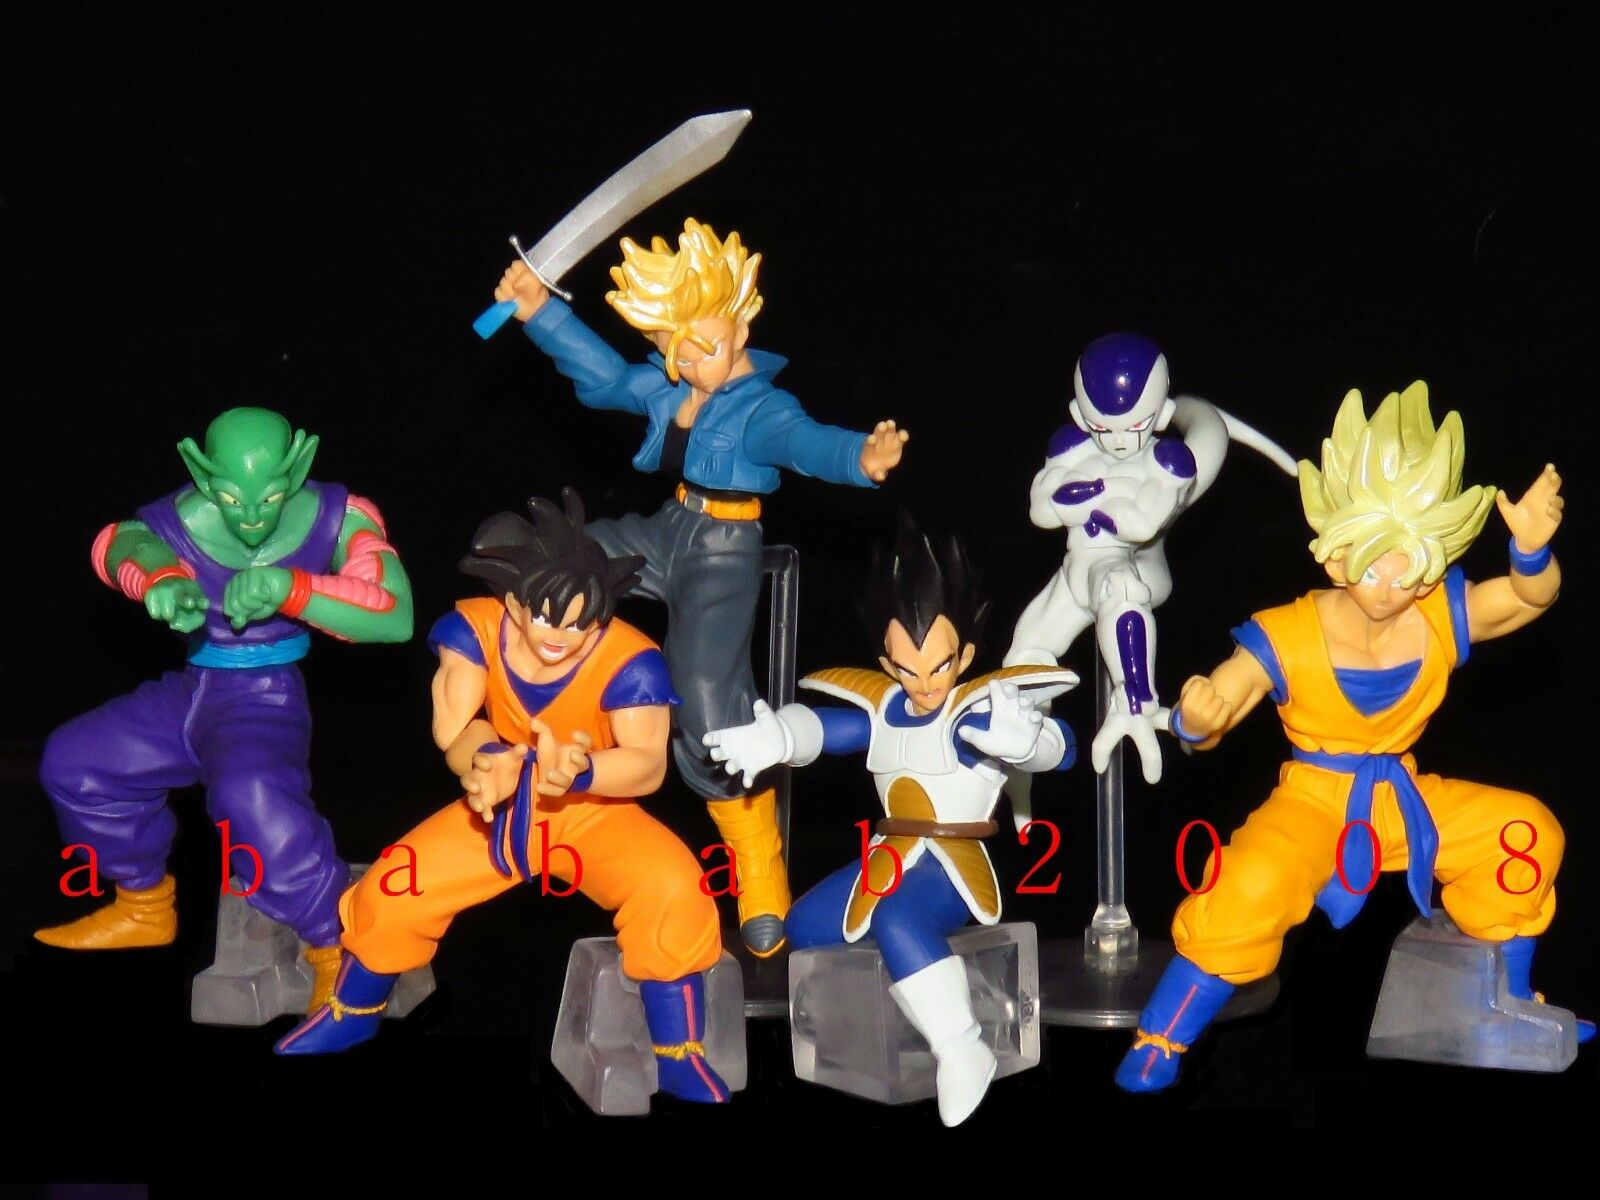 Bandai Dragonball Z figure Action Pose Pose Pose gashapon part.1 (full set of 6 figures) 1dd05f